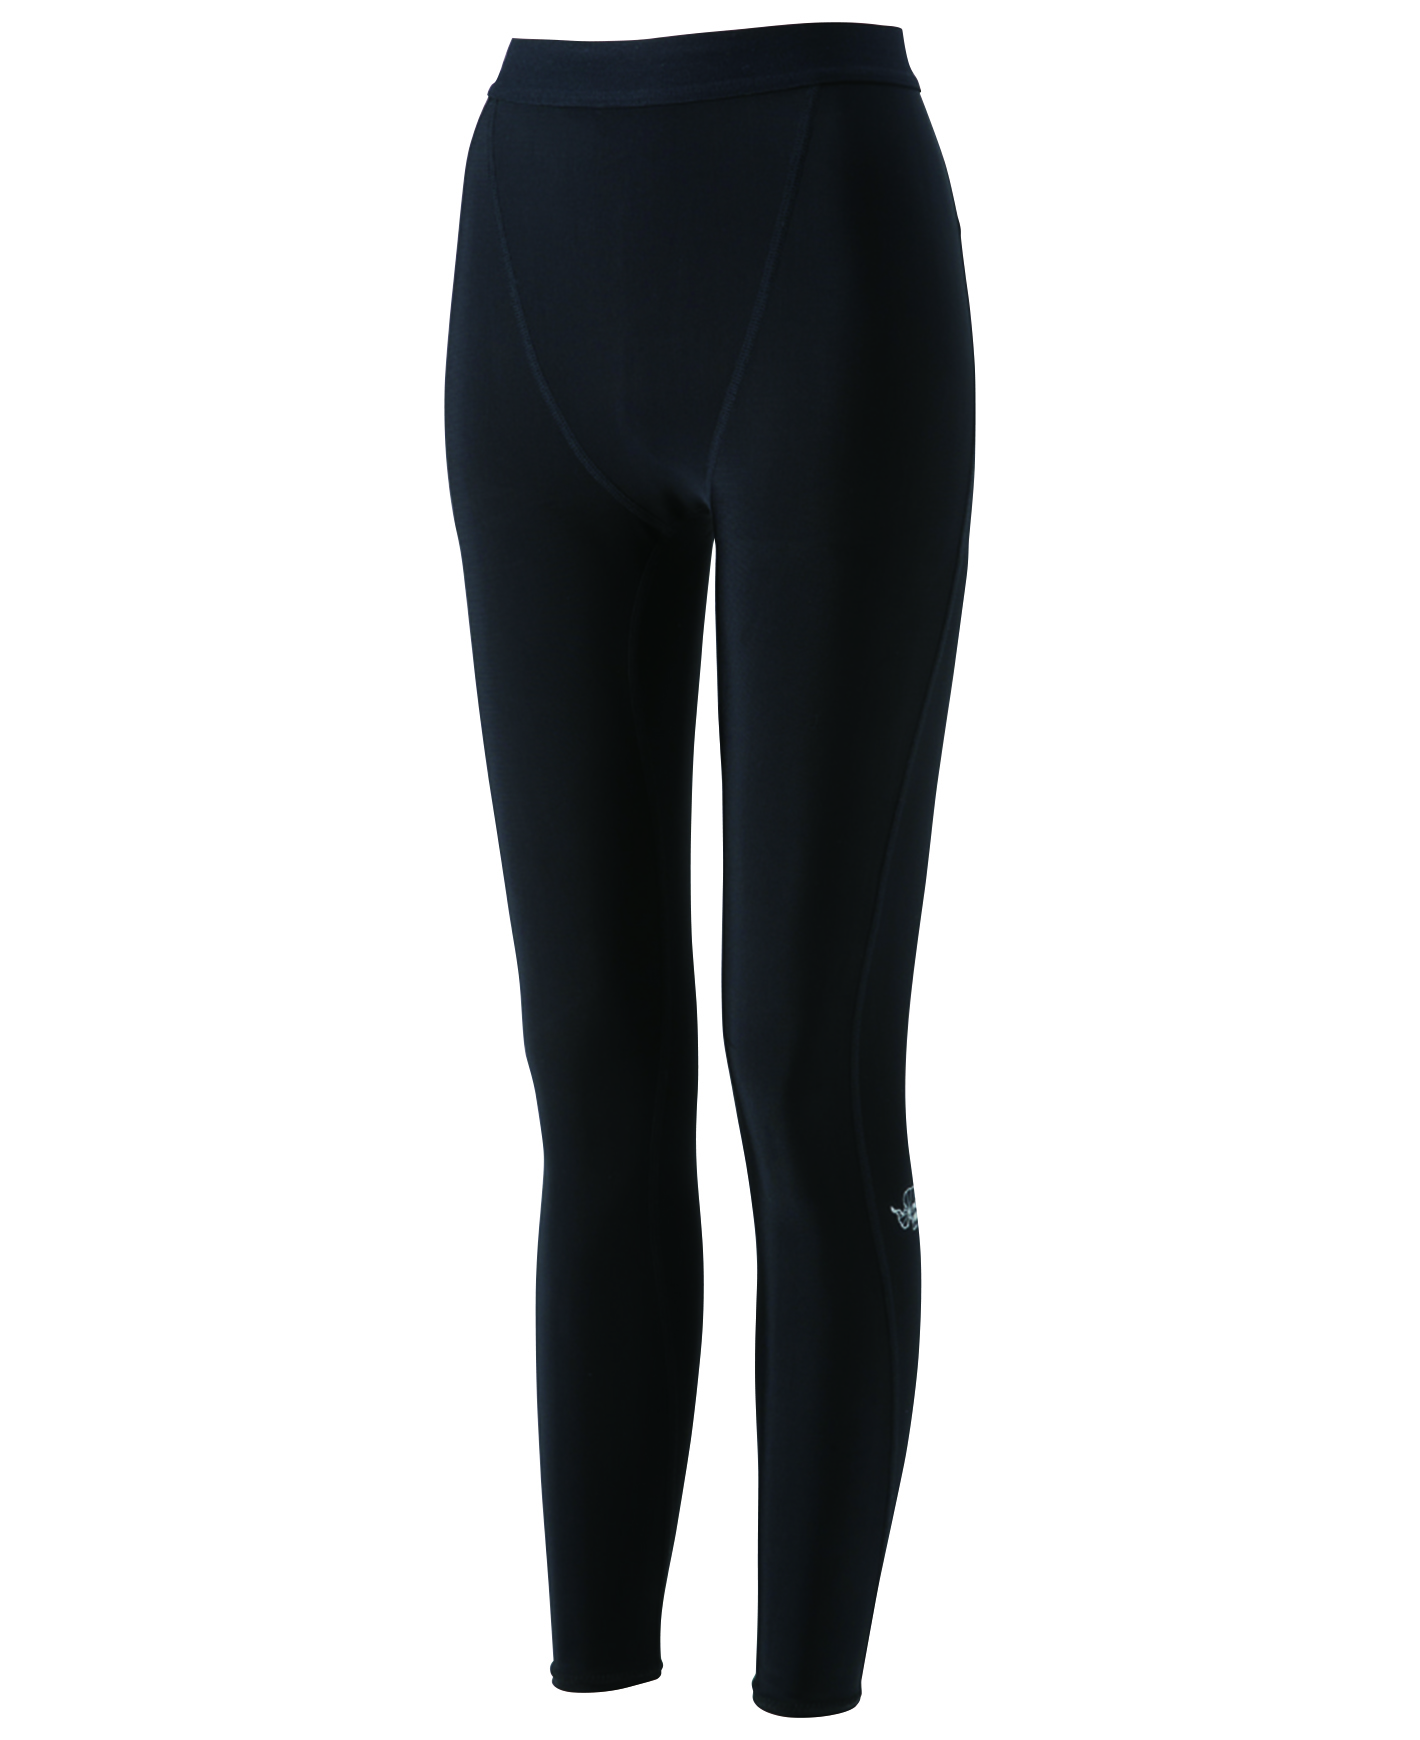 COMPRESSION LONG TIGHTS-RELAXING TYPE W'S(コンプレッション ロングタイツ リラクシングタイプ)